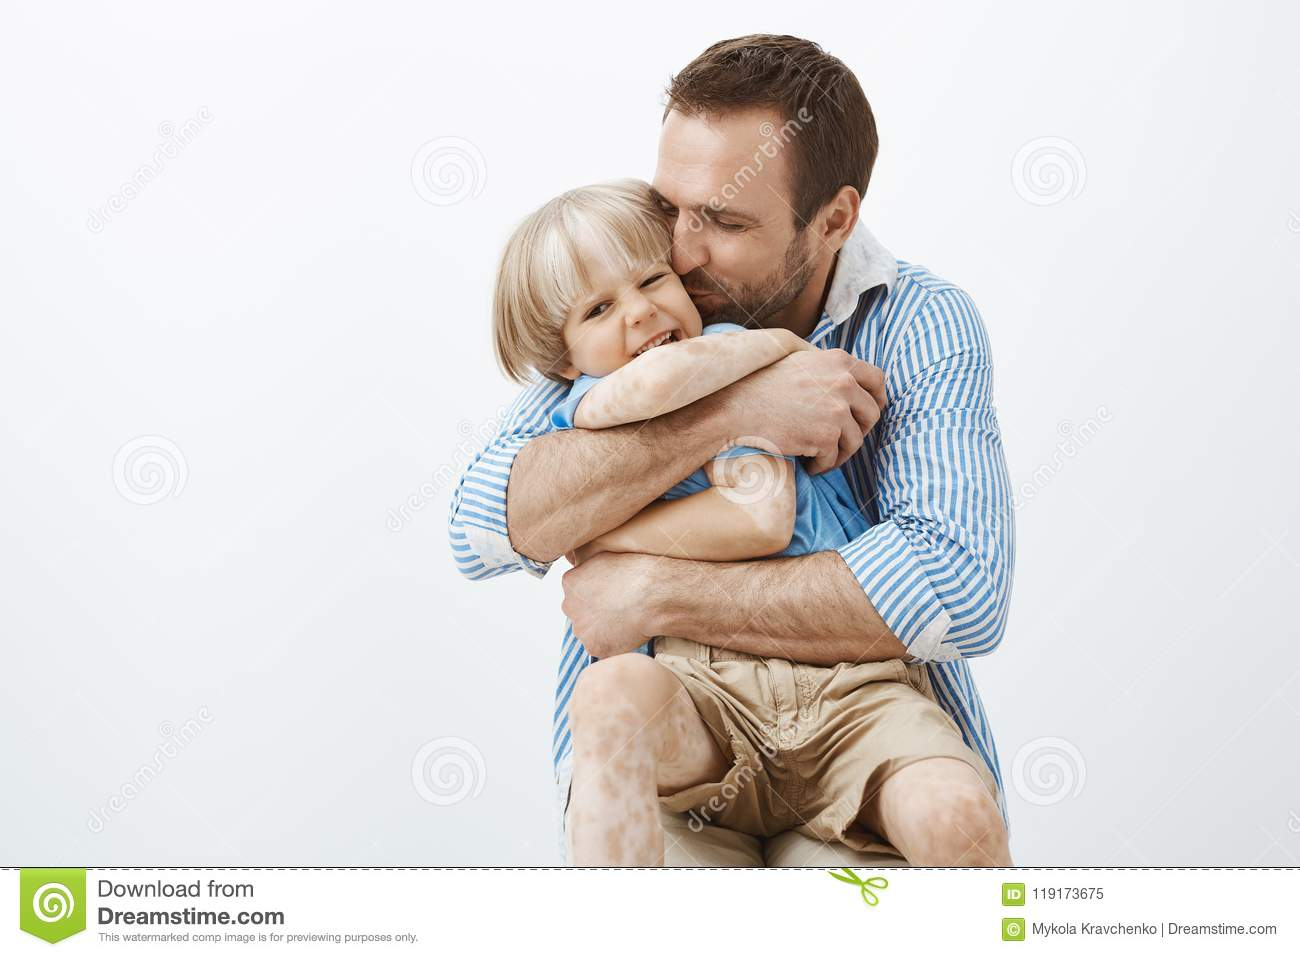 f749e68b Father loves his little son like no one else. Cute good-looking caring dad  hugging and kissing child in cheek, feeling happy spending time with kid,  ...